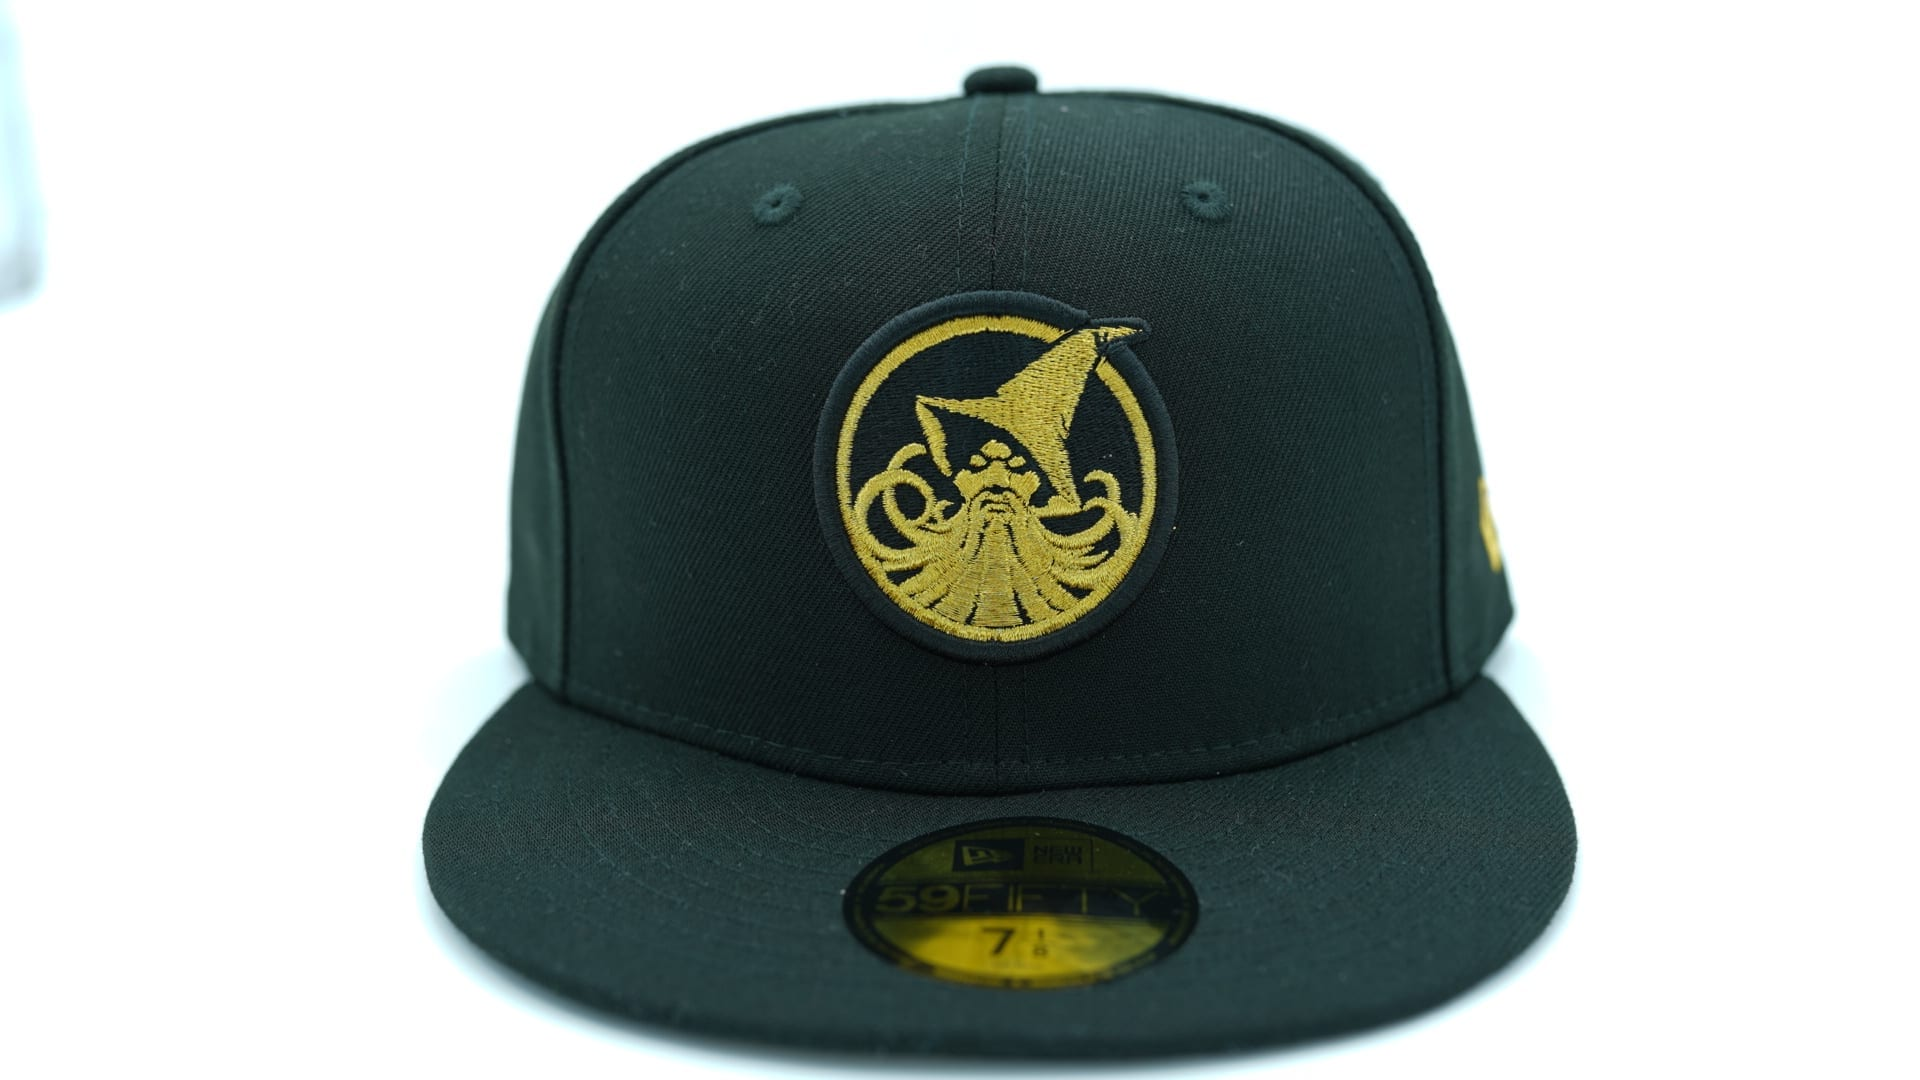 https://neweracap.ph/__resources/webdata/images/product-gallery/3837_936.jpg